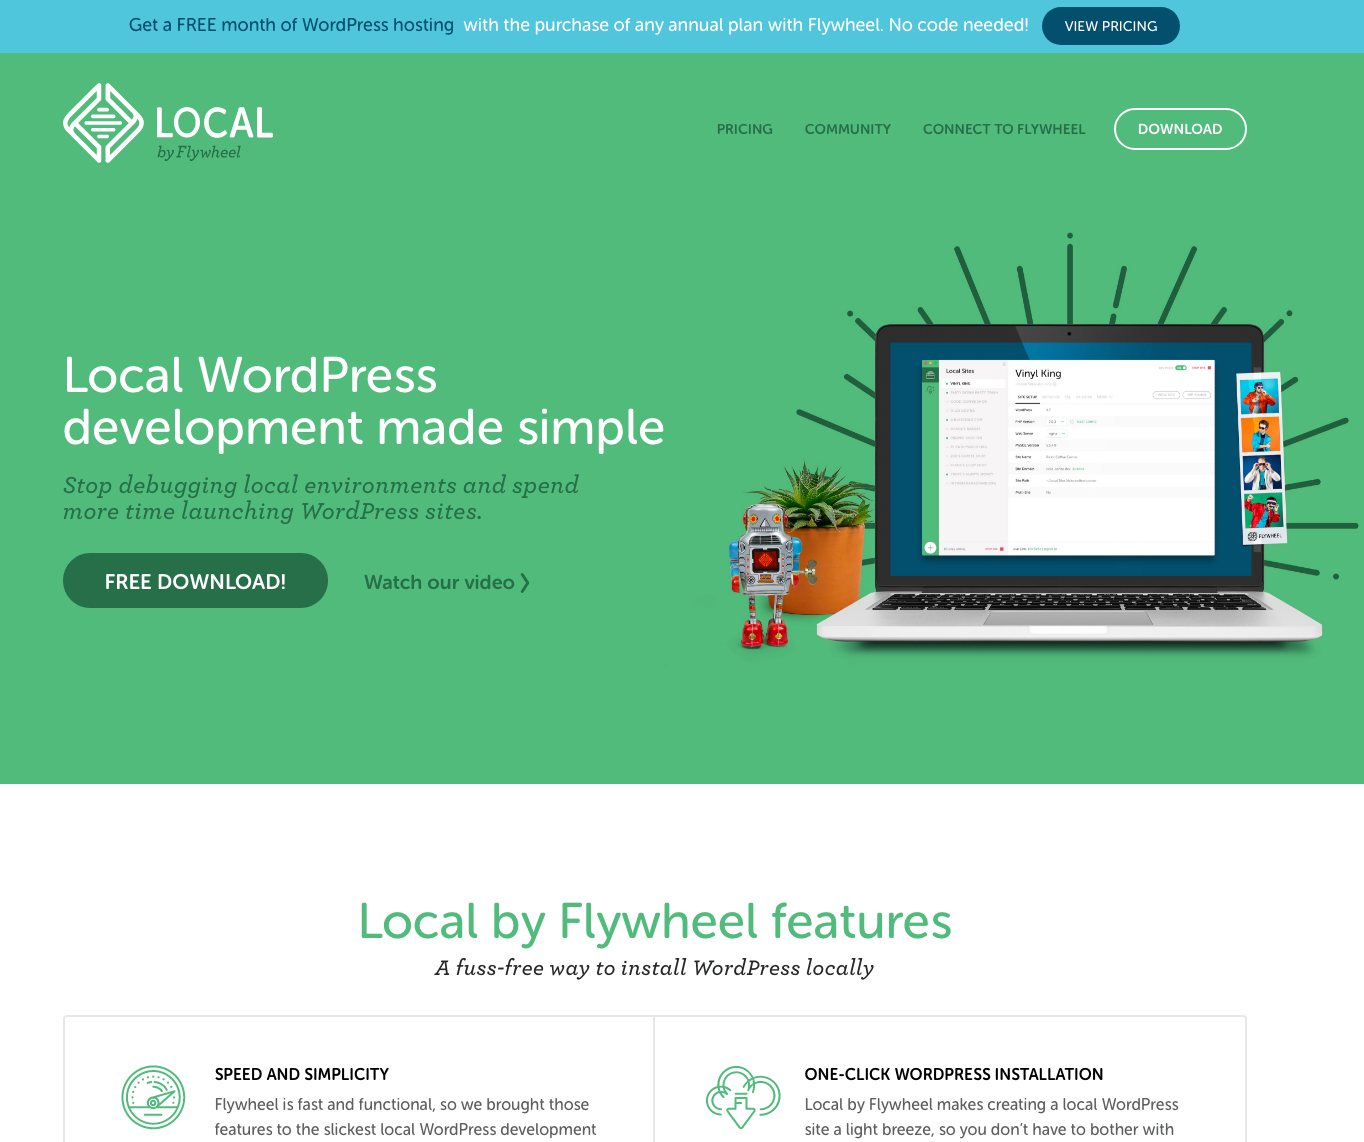 Local by Flywheel website img